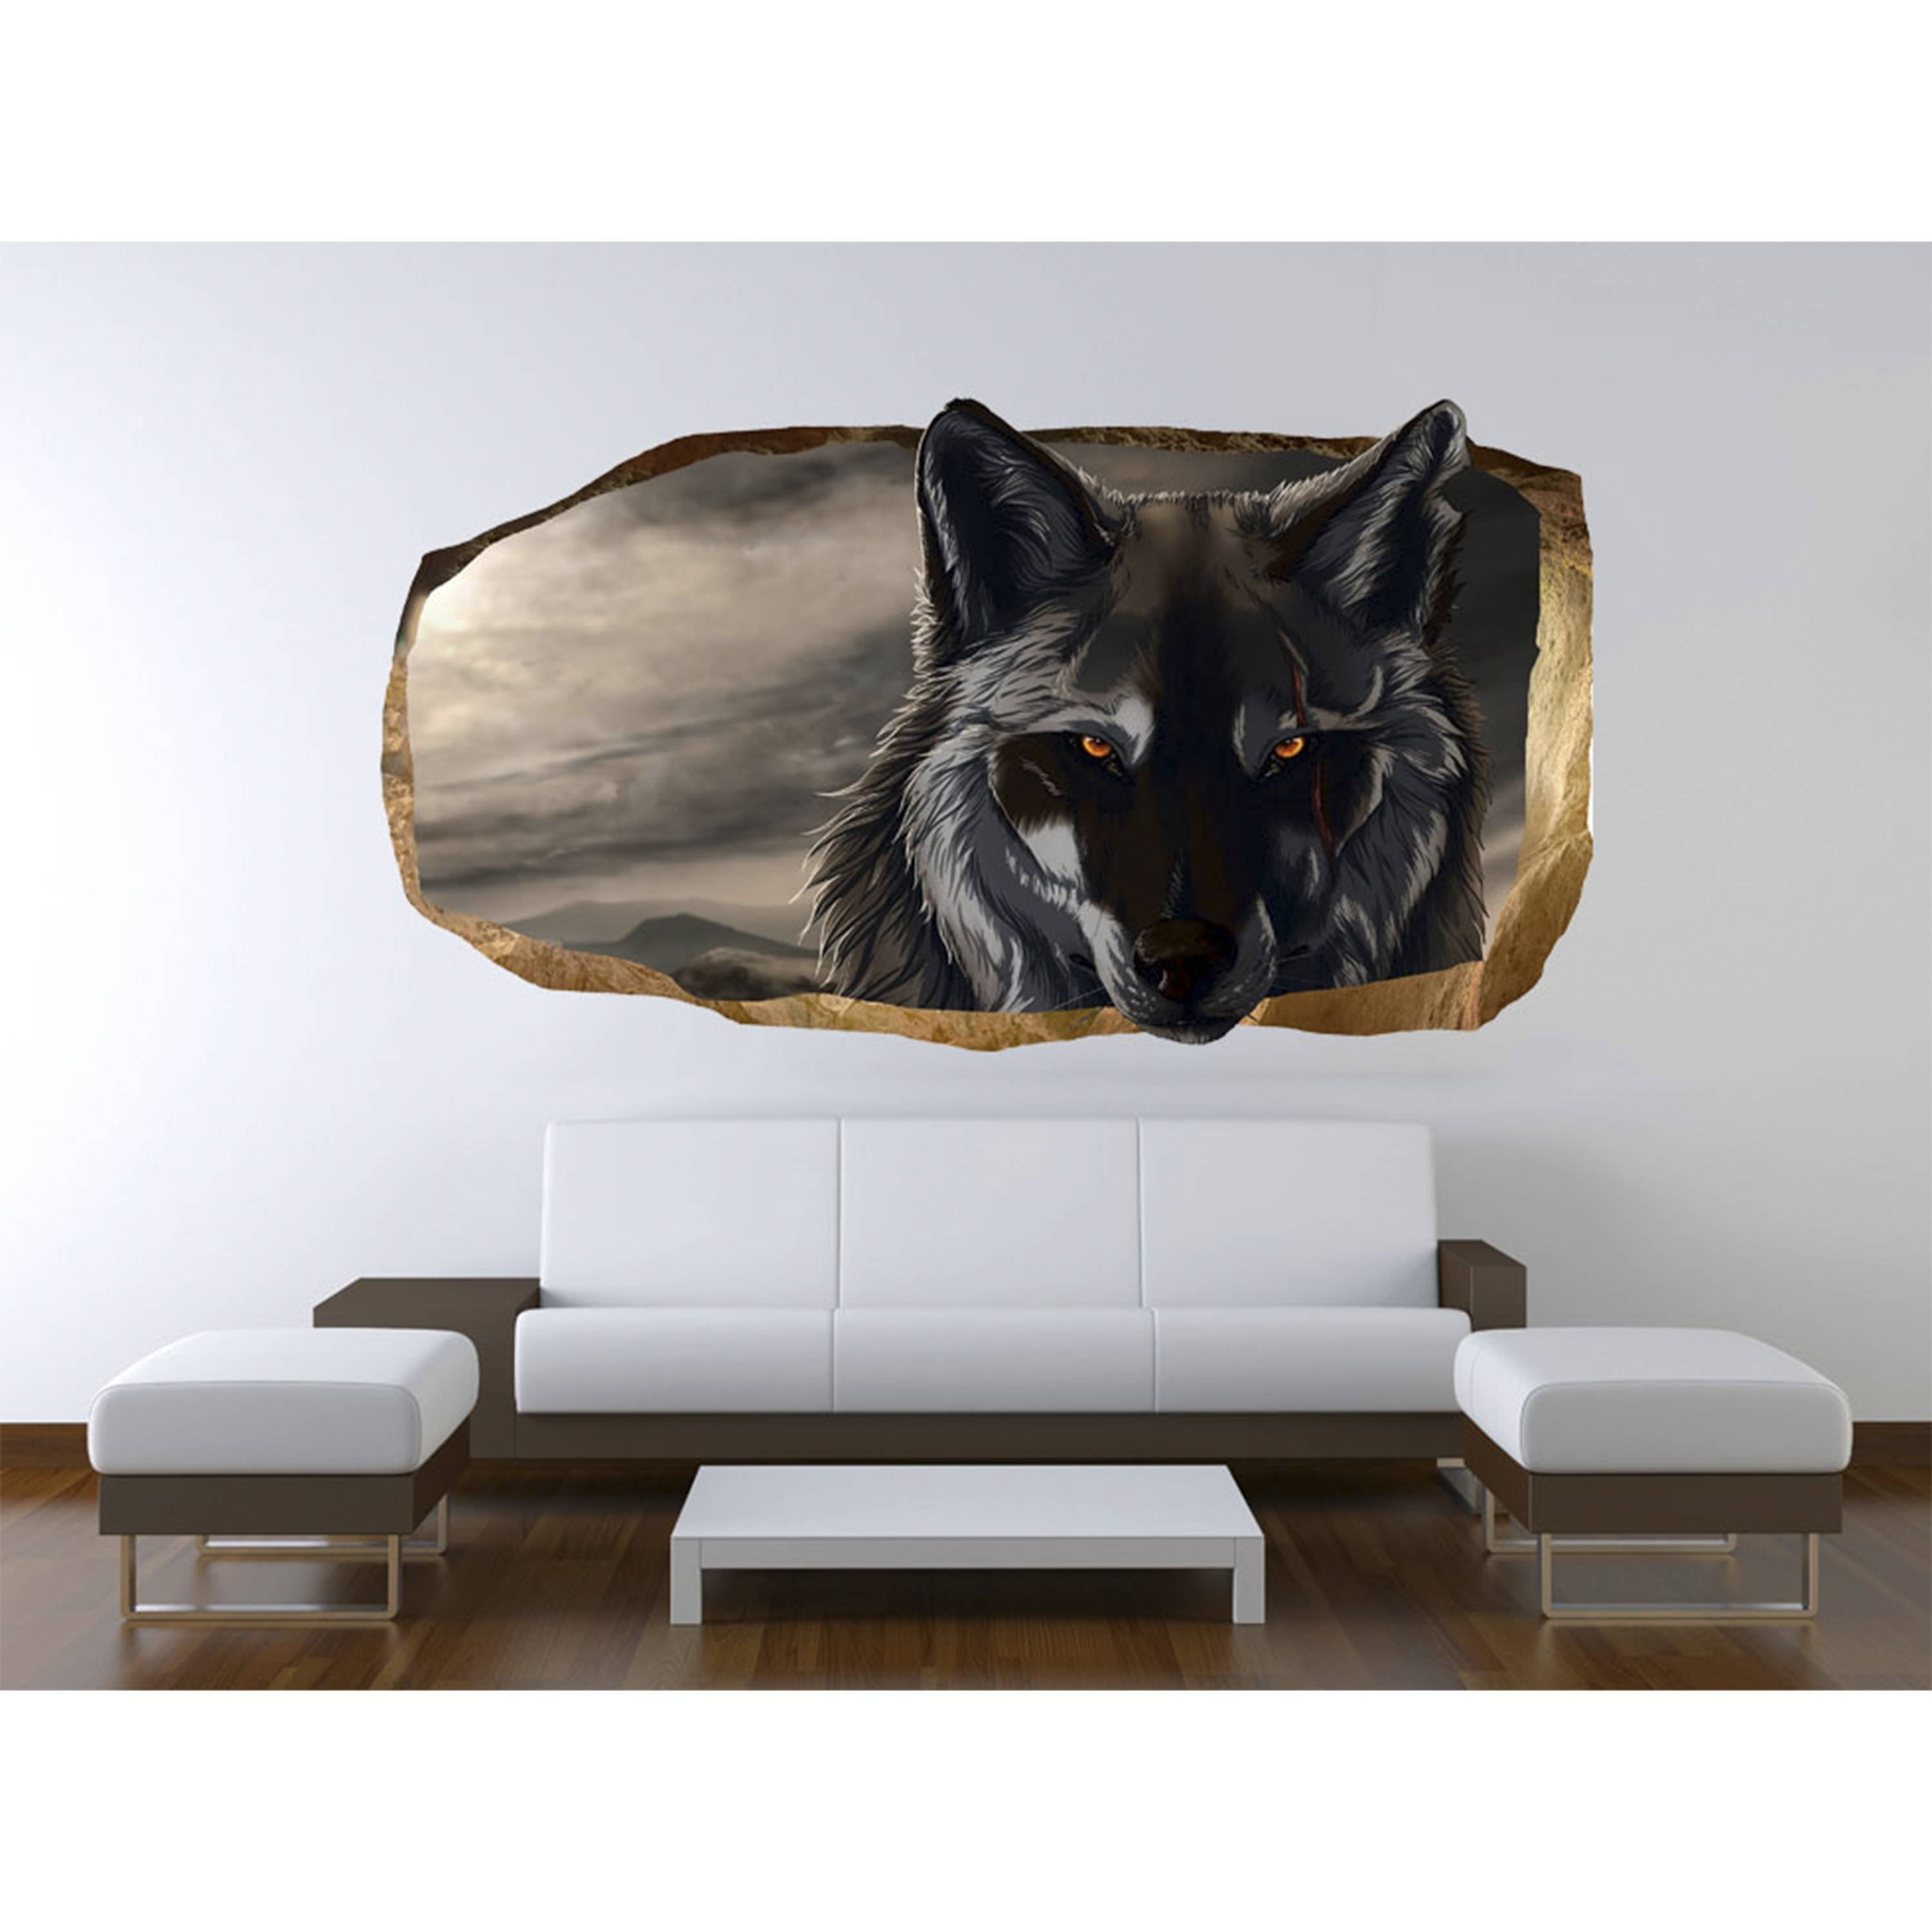 Startonight 3D Mural Wall Art Photo Decor Wolf Amazing Dual View With Regard To 2018 Wolf 3D Wall Art (View 15 of 20)